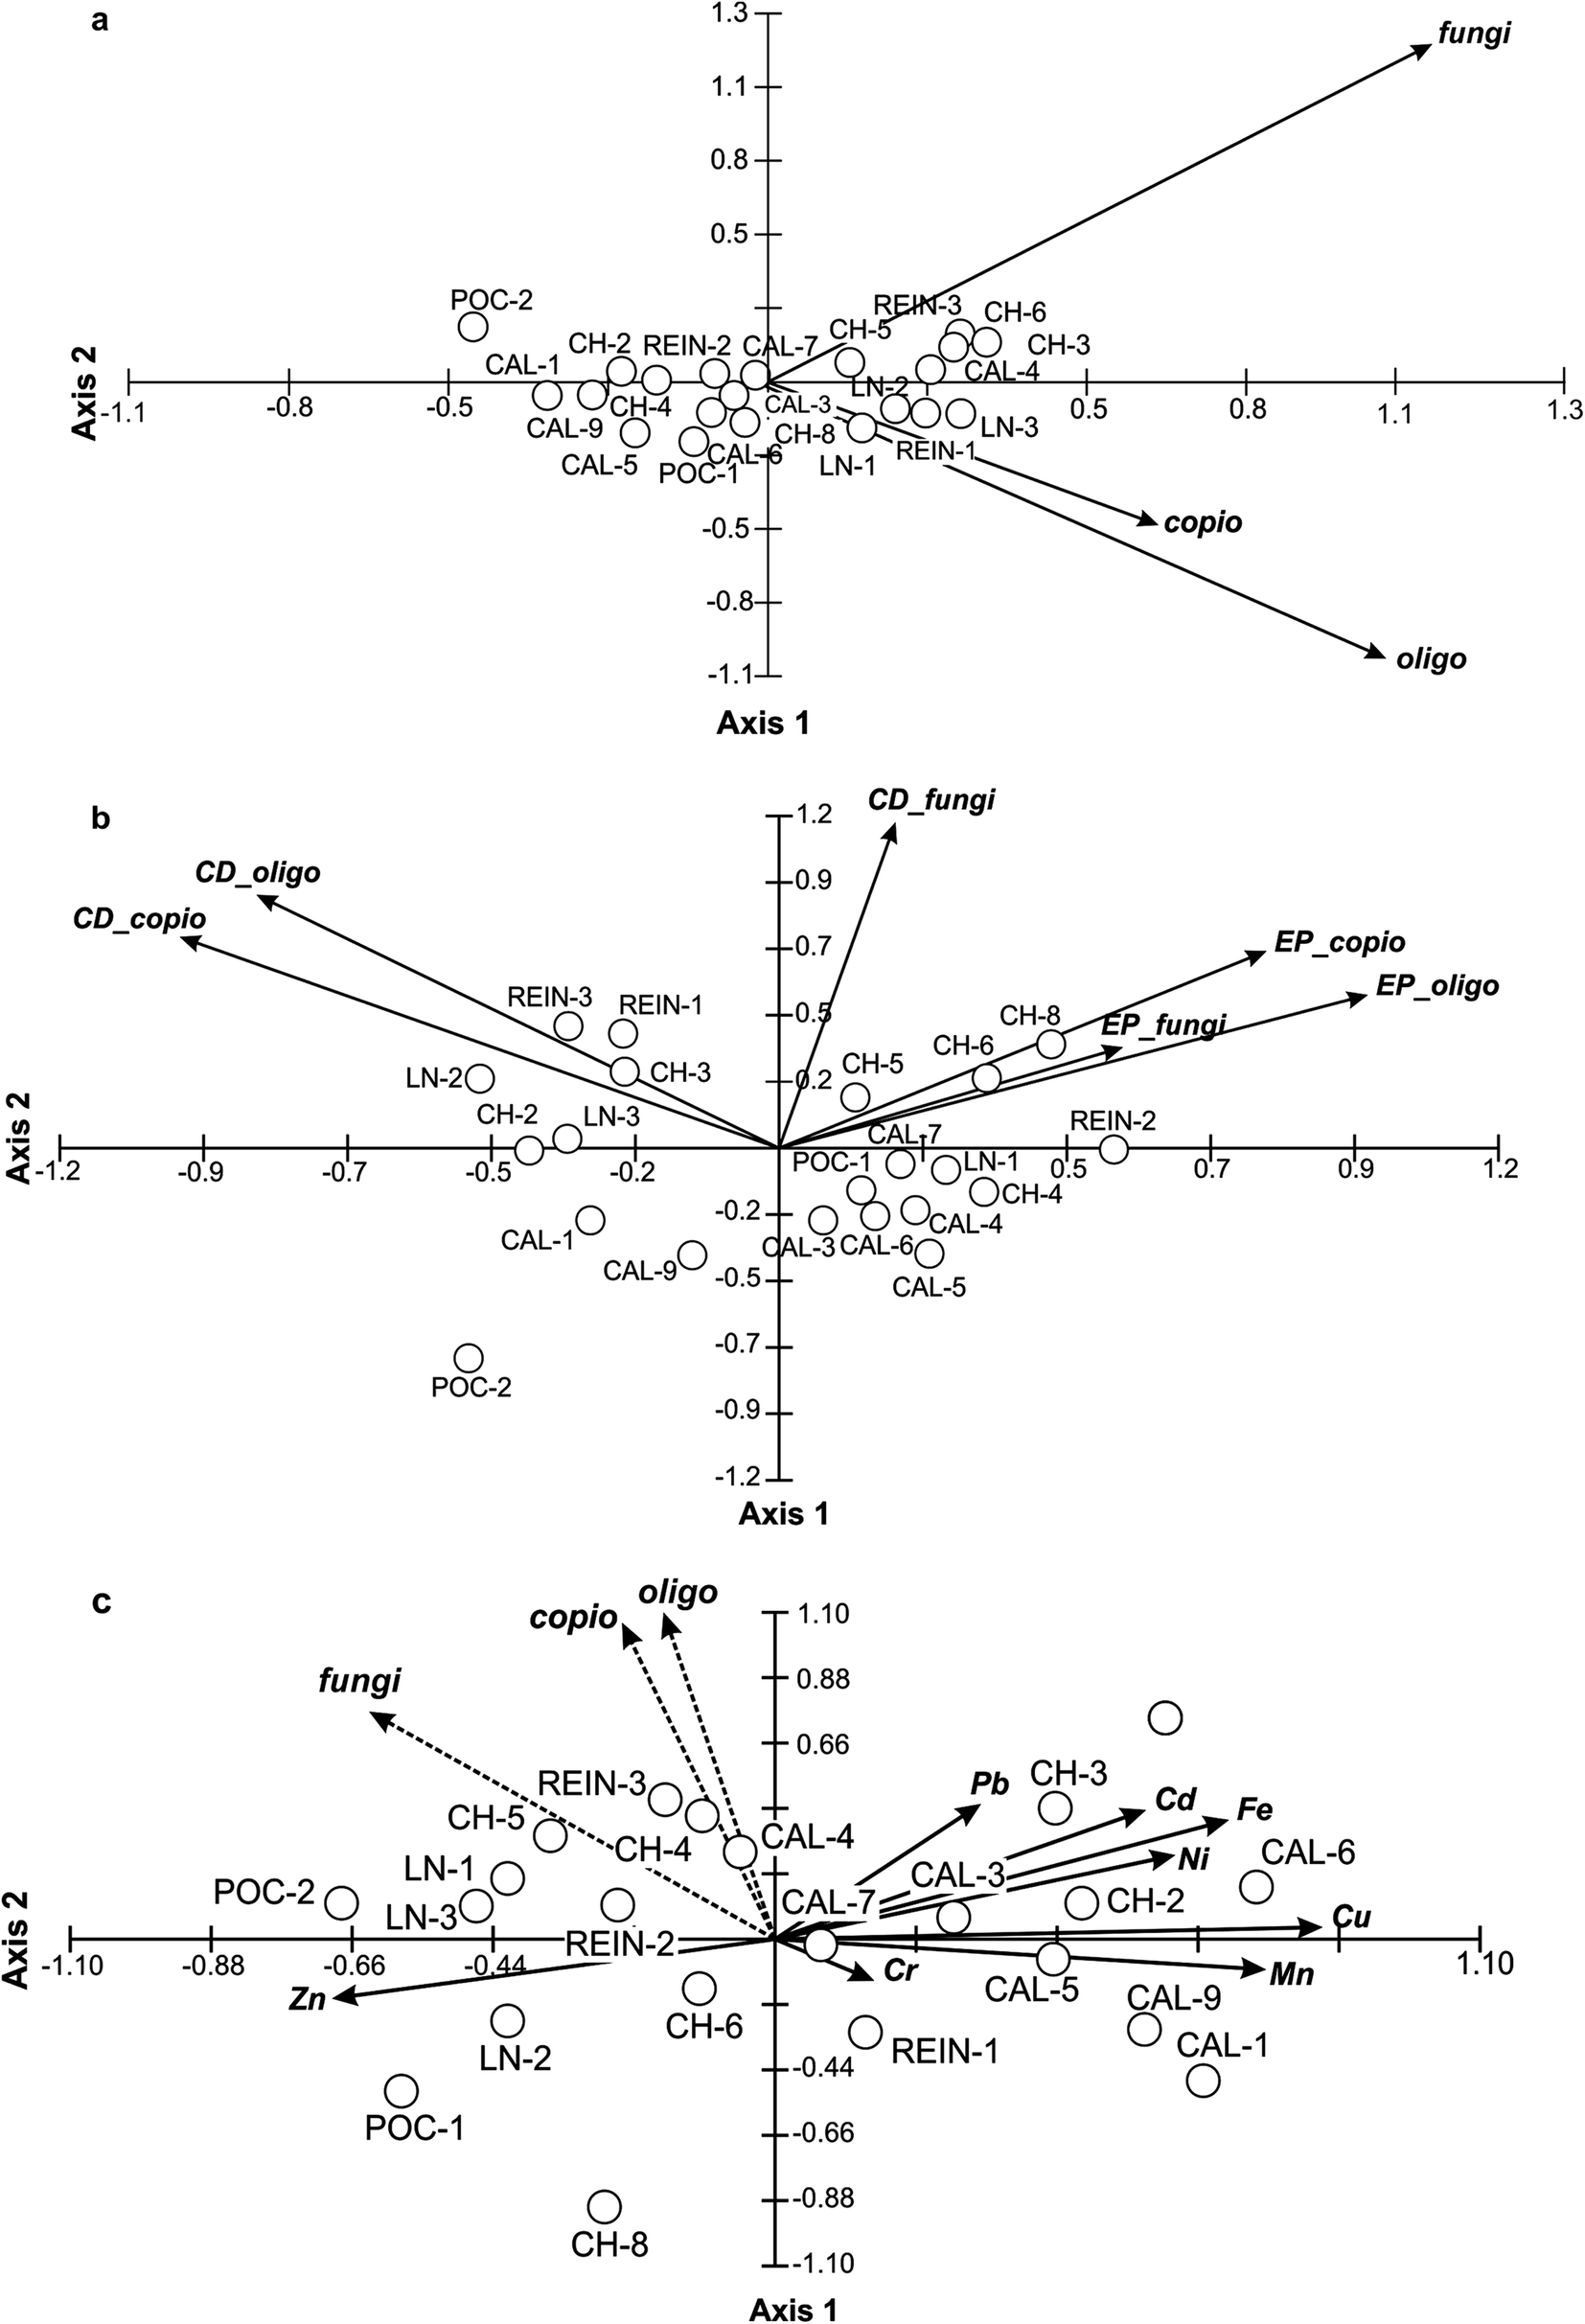 Relationships between the properties of Spitsbergen soil